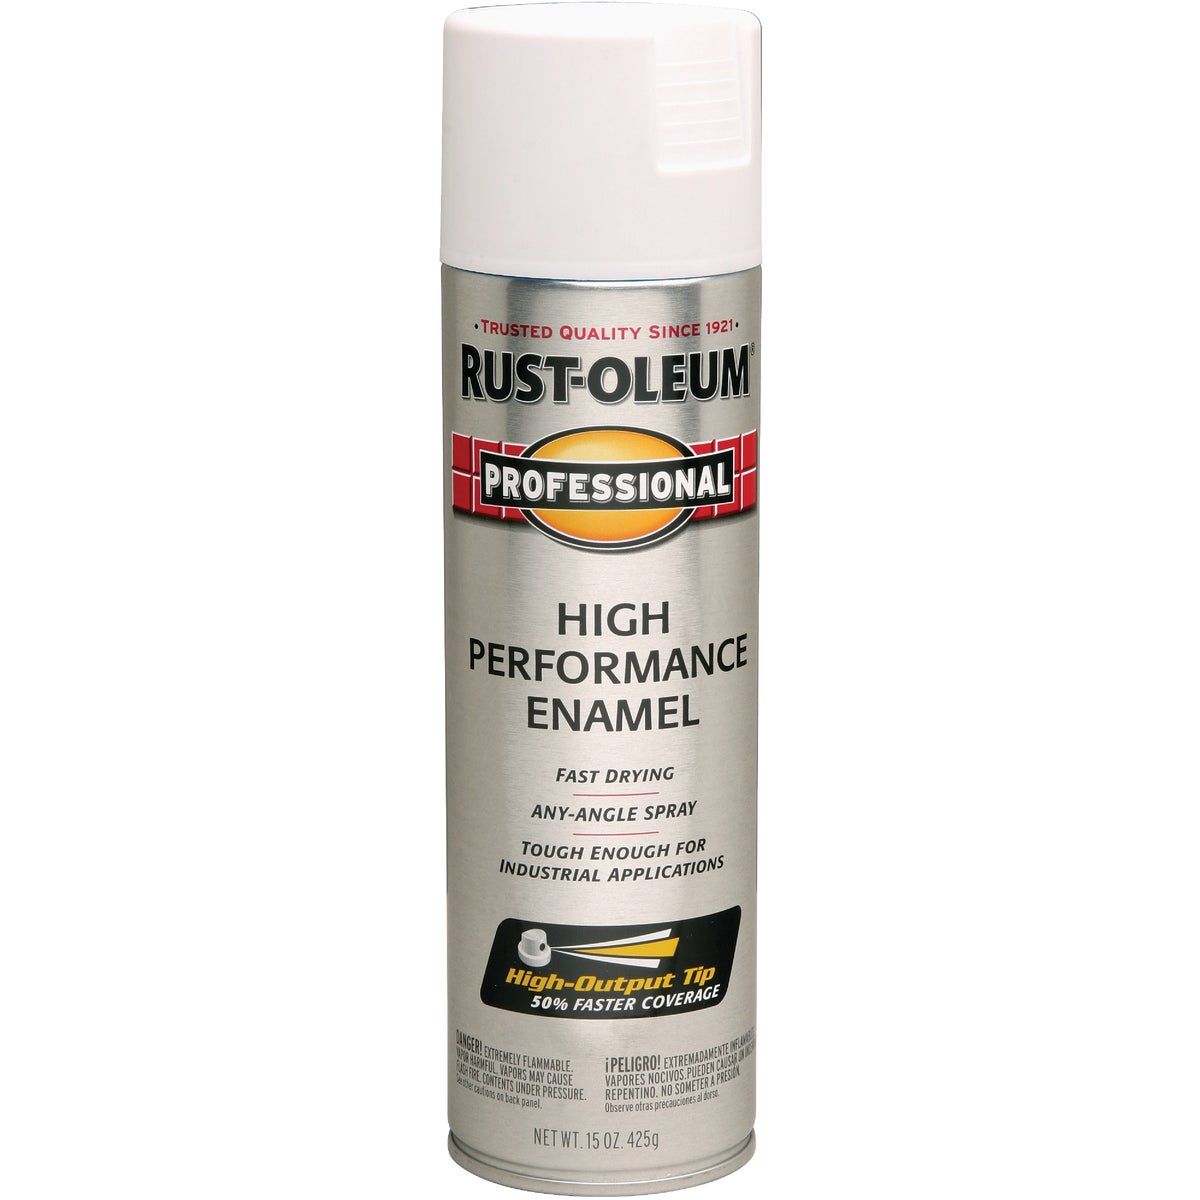 FLAT WHT PRO SPRAY PAINT - 7590-838 by Rustoleum